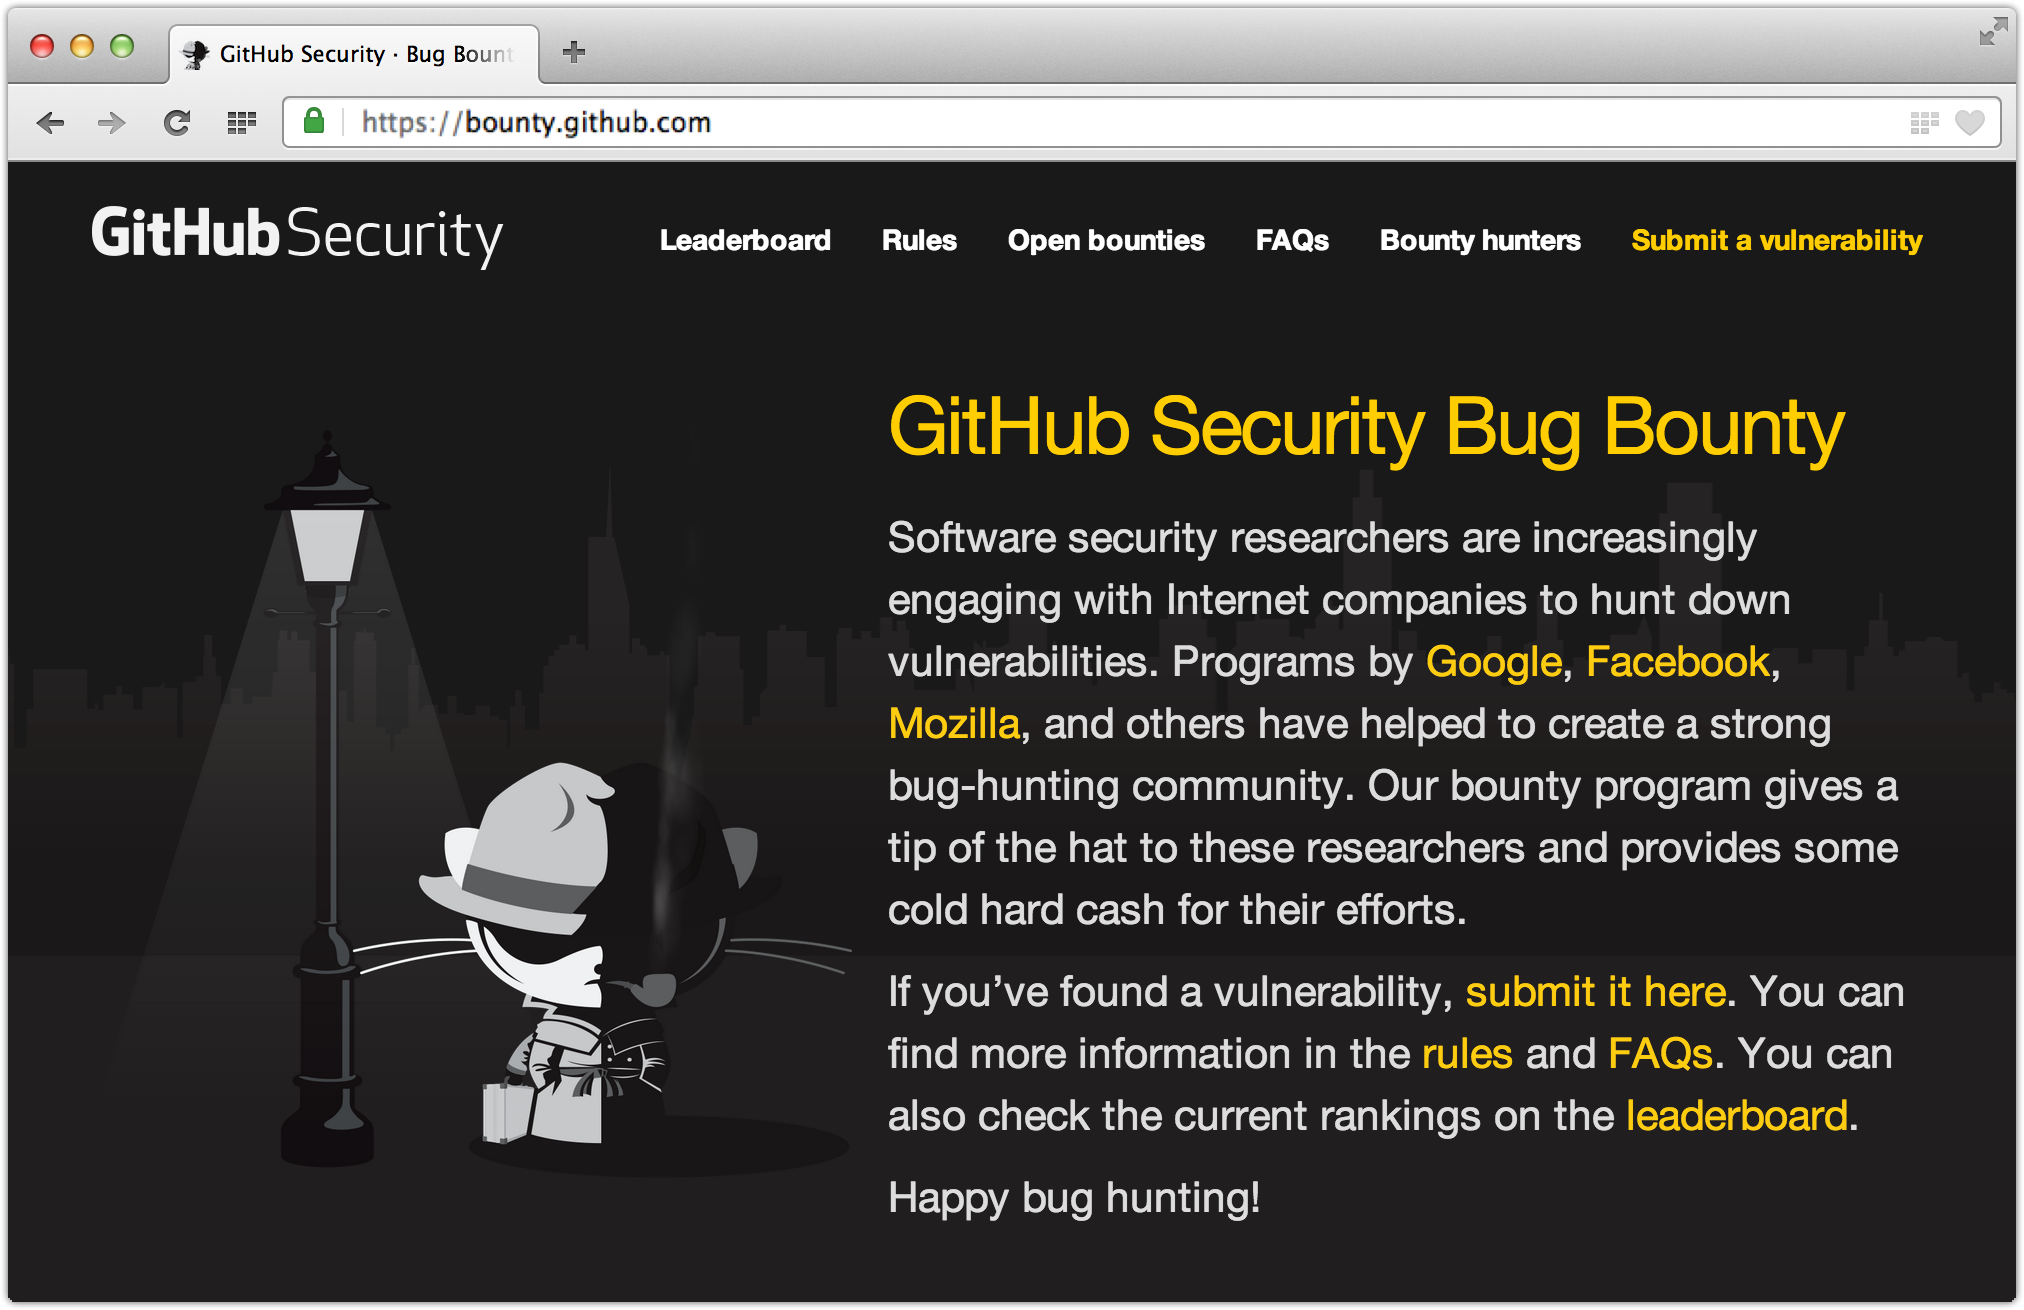 c01e695e 89d6 11e3 82f3 2efe4cdc16a1 GitHub launches Bug Bounty program, offers between $100 and $5,000 for security vulnerabilities